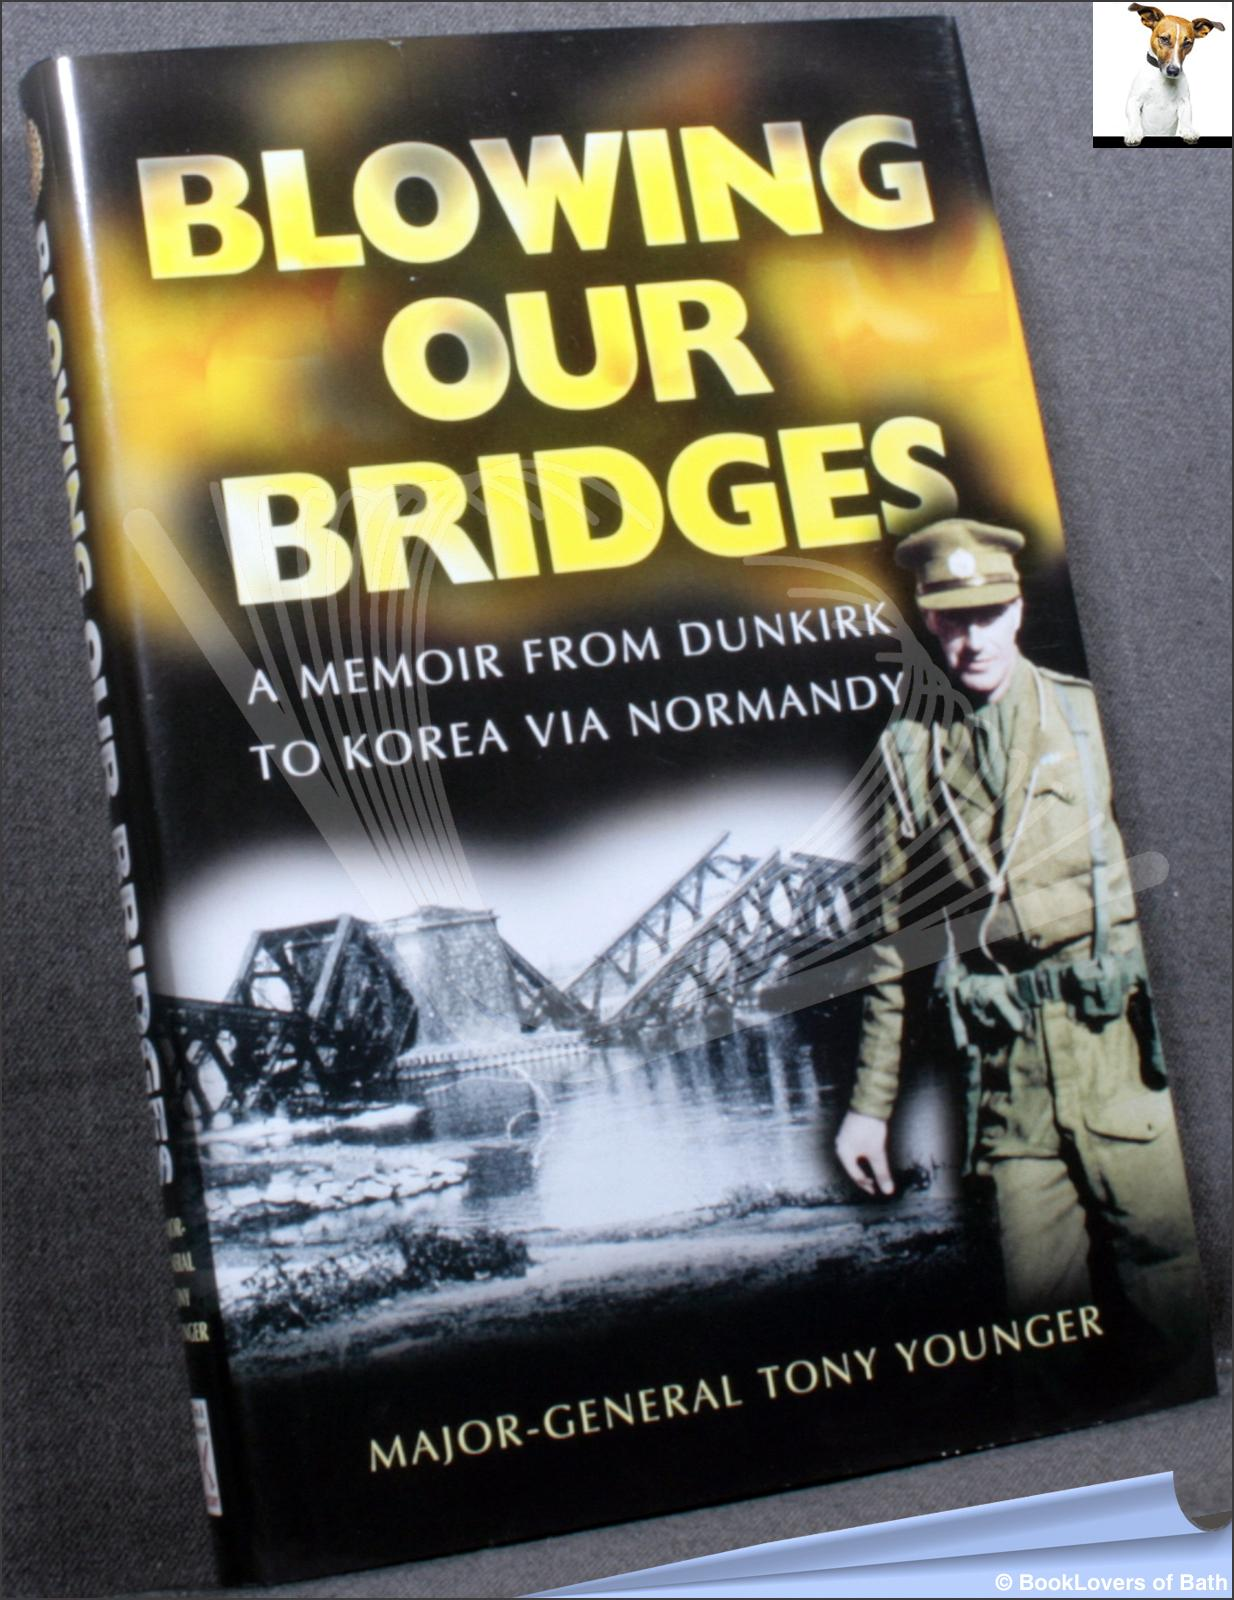 Blowing Our Bridges: A Memoir from Dunkirk to Korea Via Normandy - Tony Younger